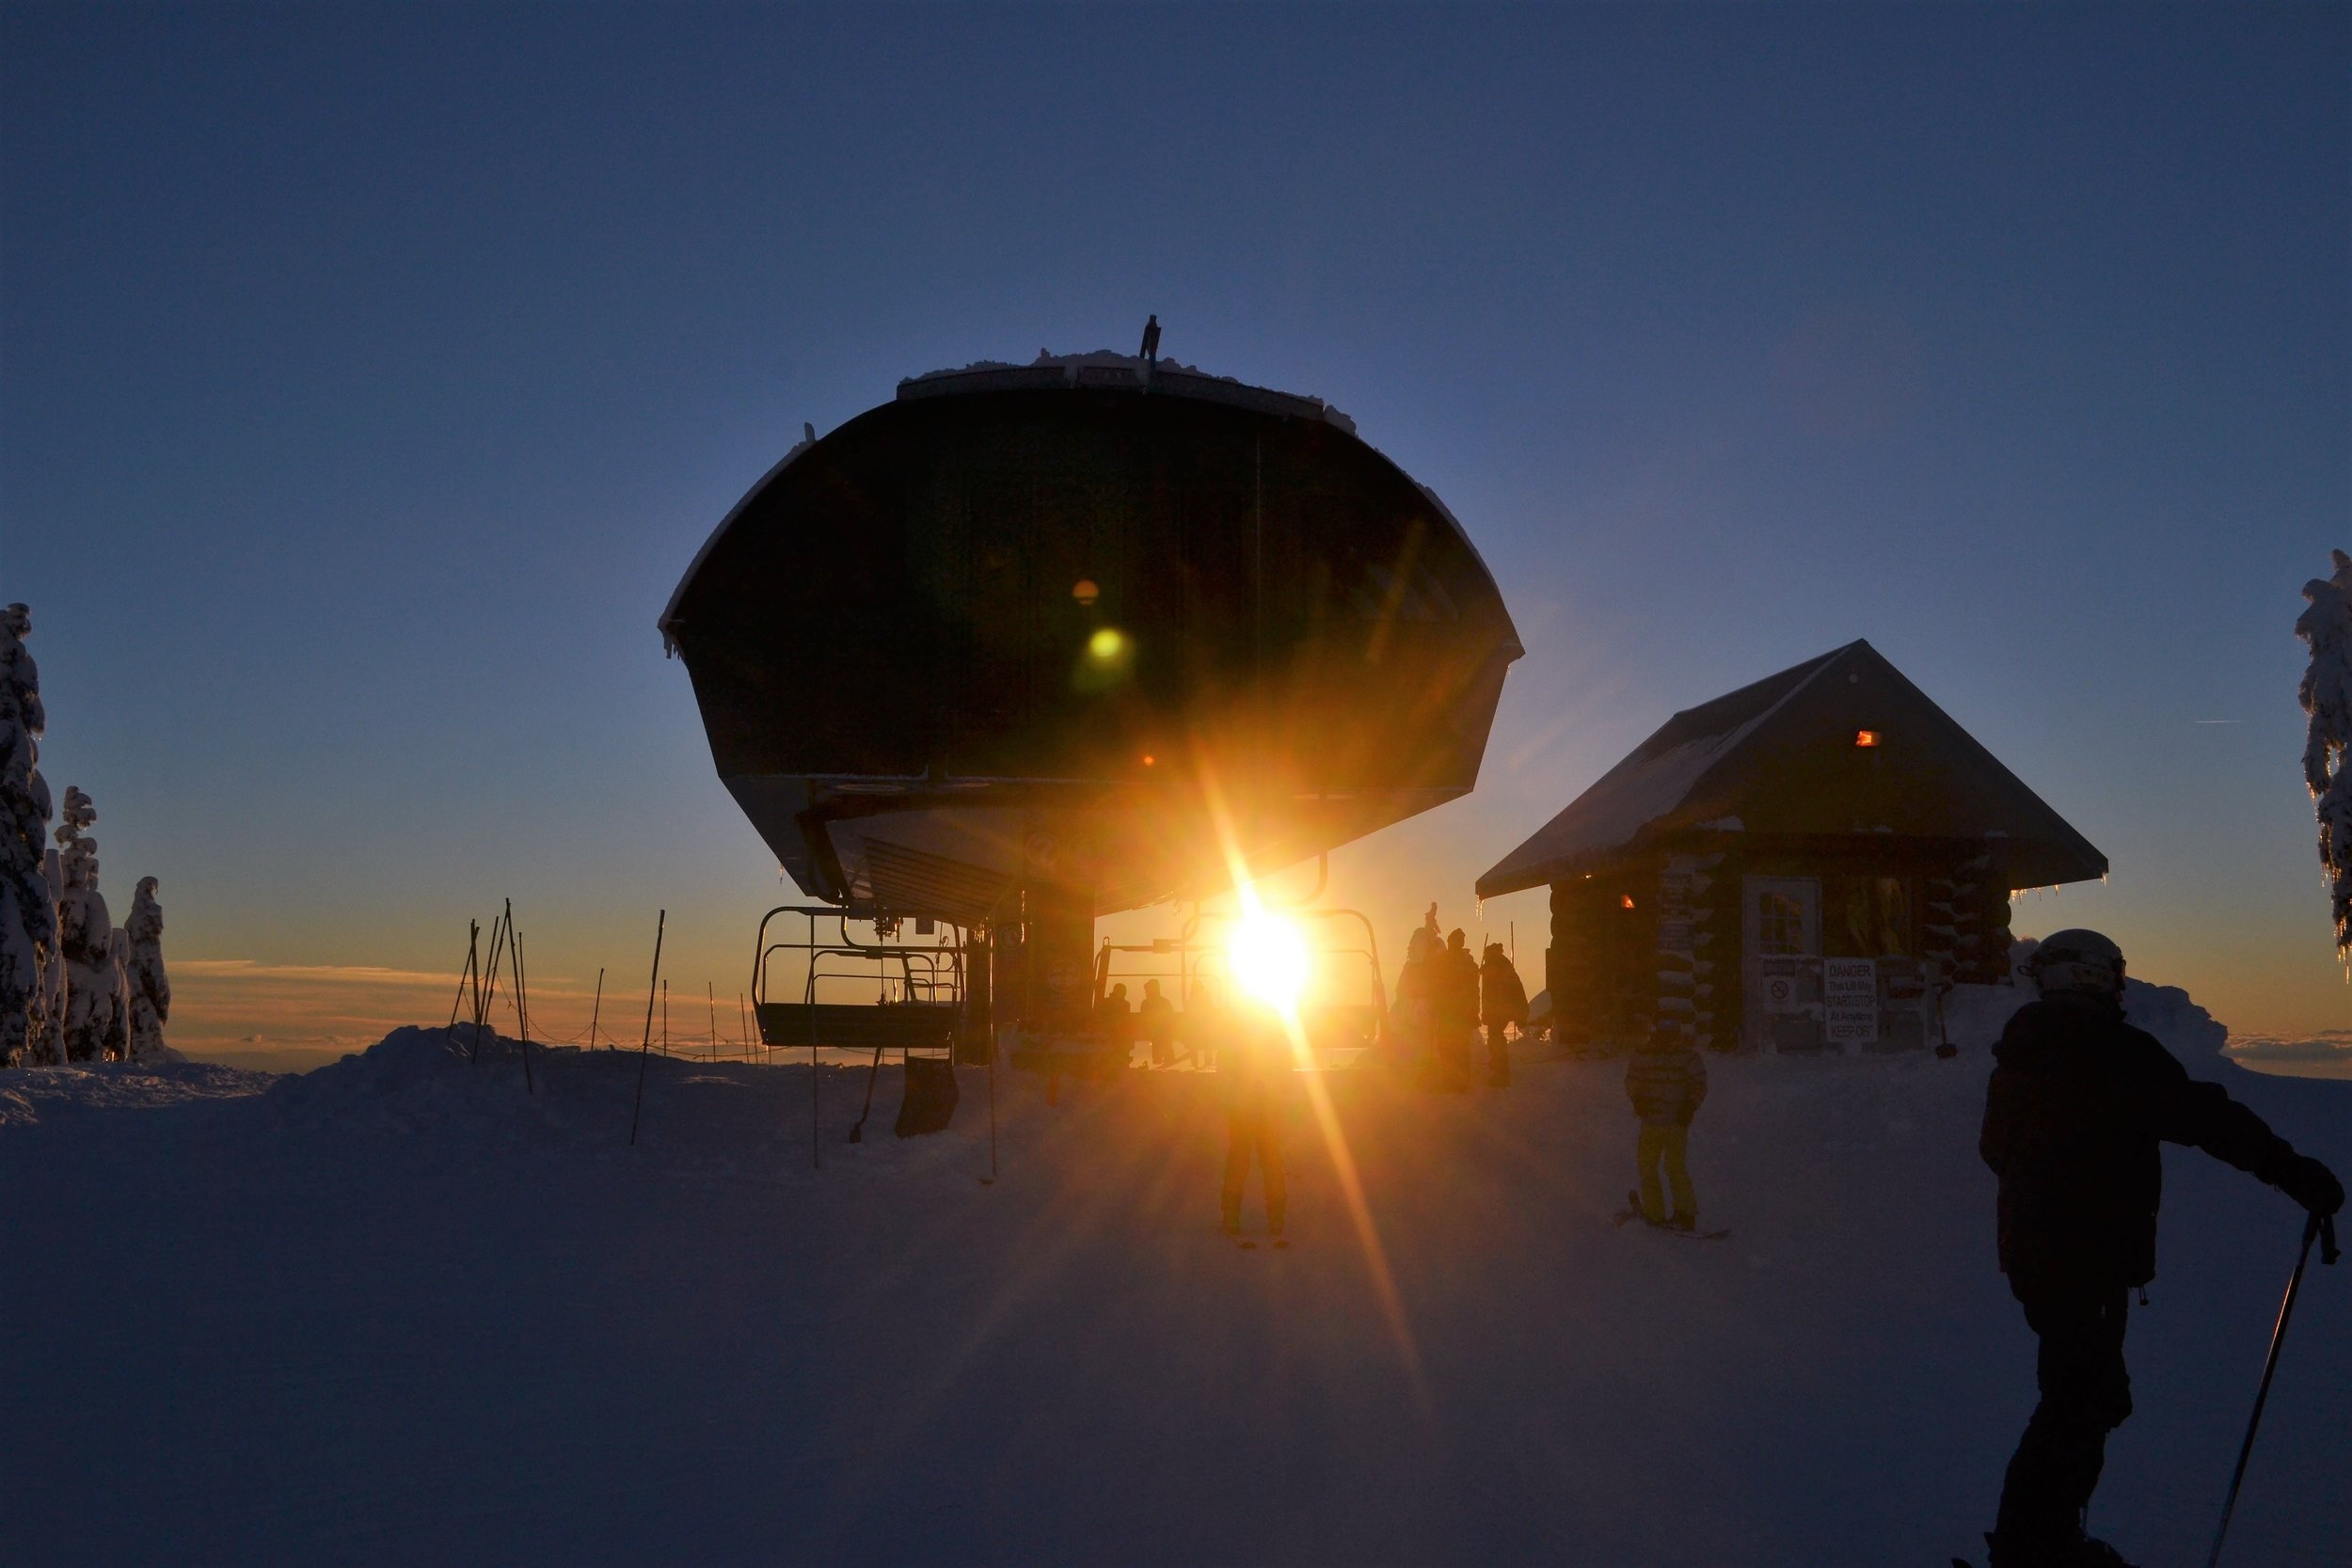 Sunsetting at one of the chairlifts at the local mountains in Vancouver